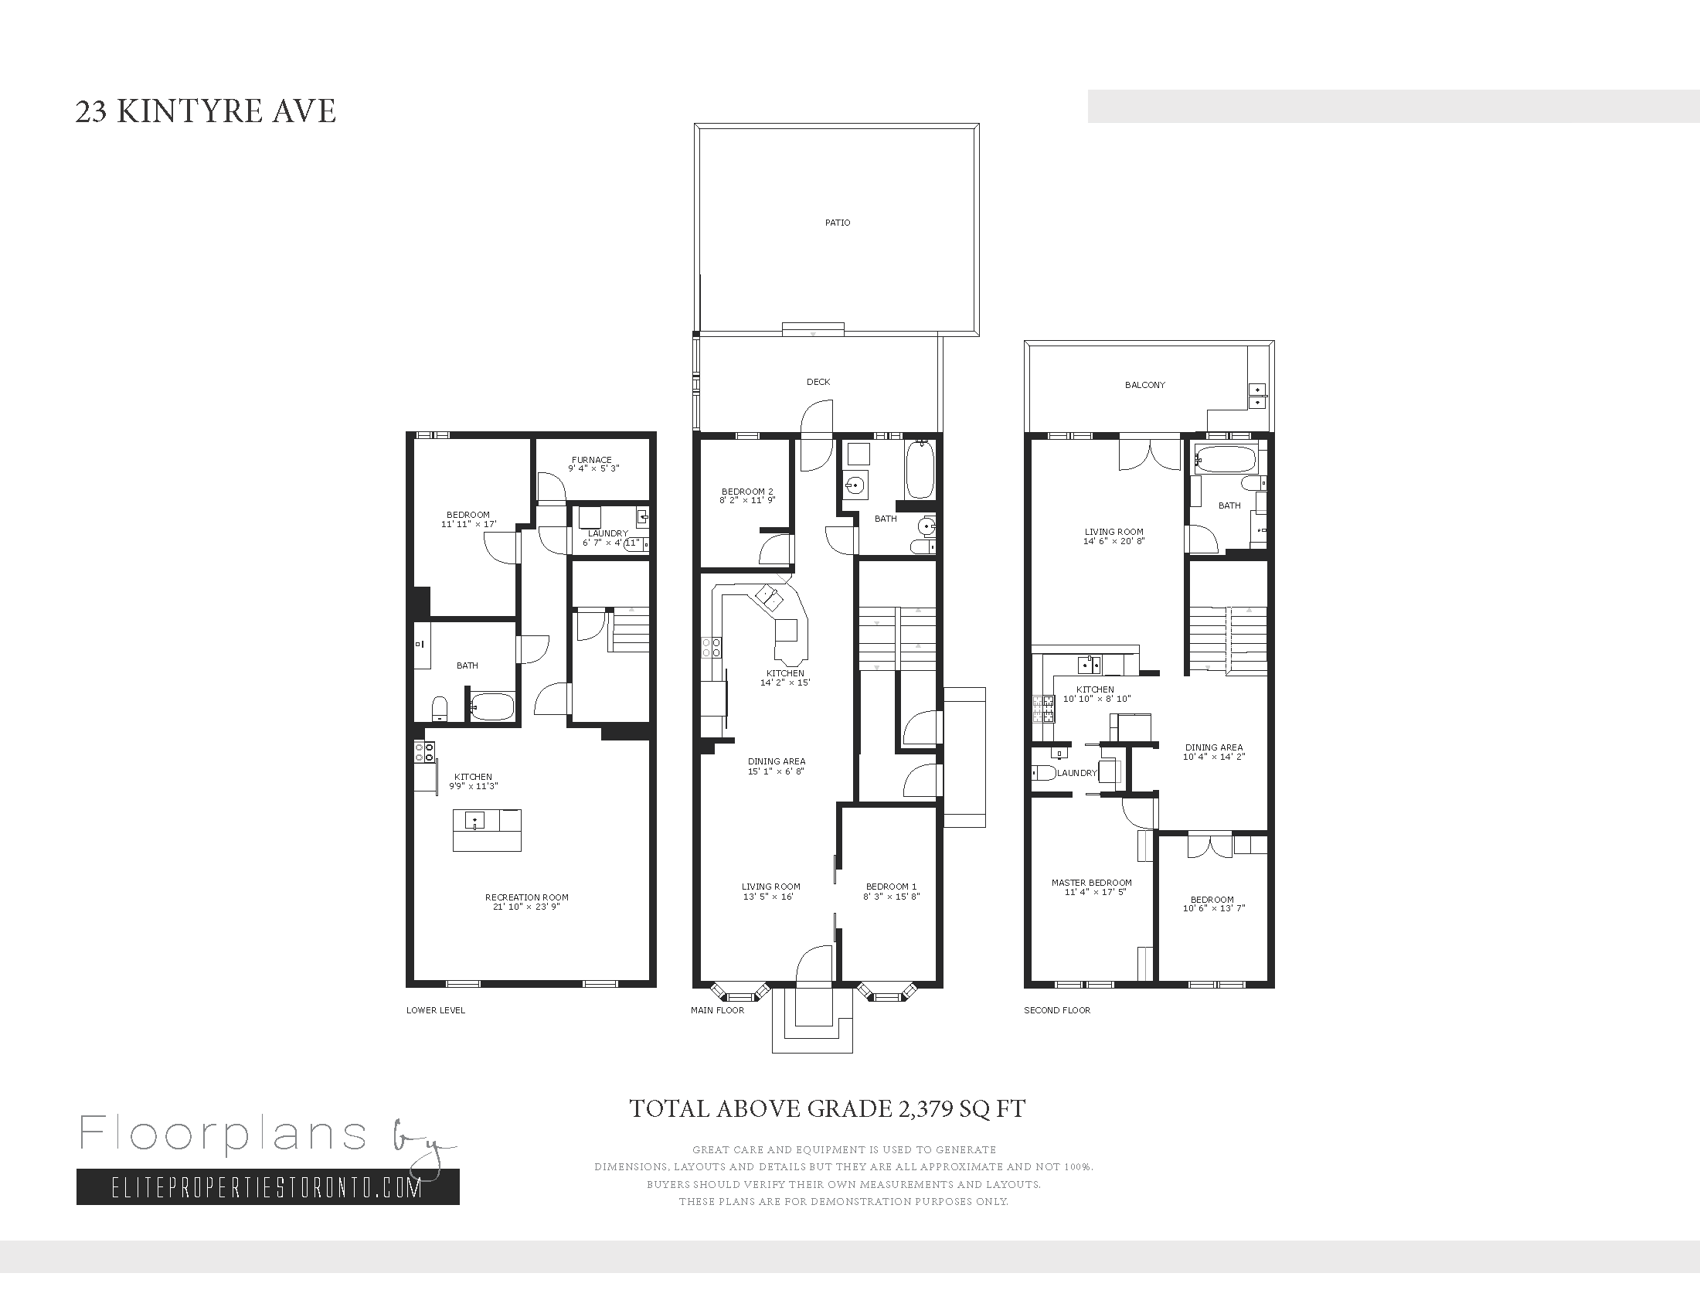 FloorplansbyEPT23KintyreAve_Page_1.resize_1700x.png